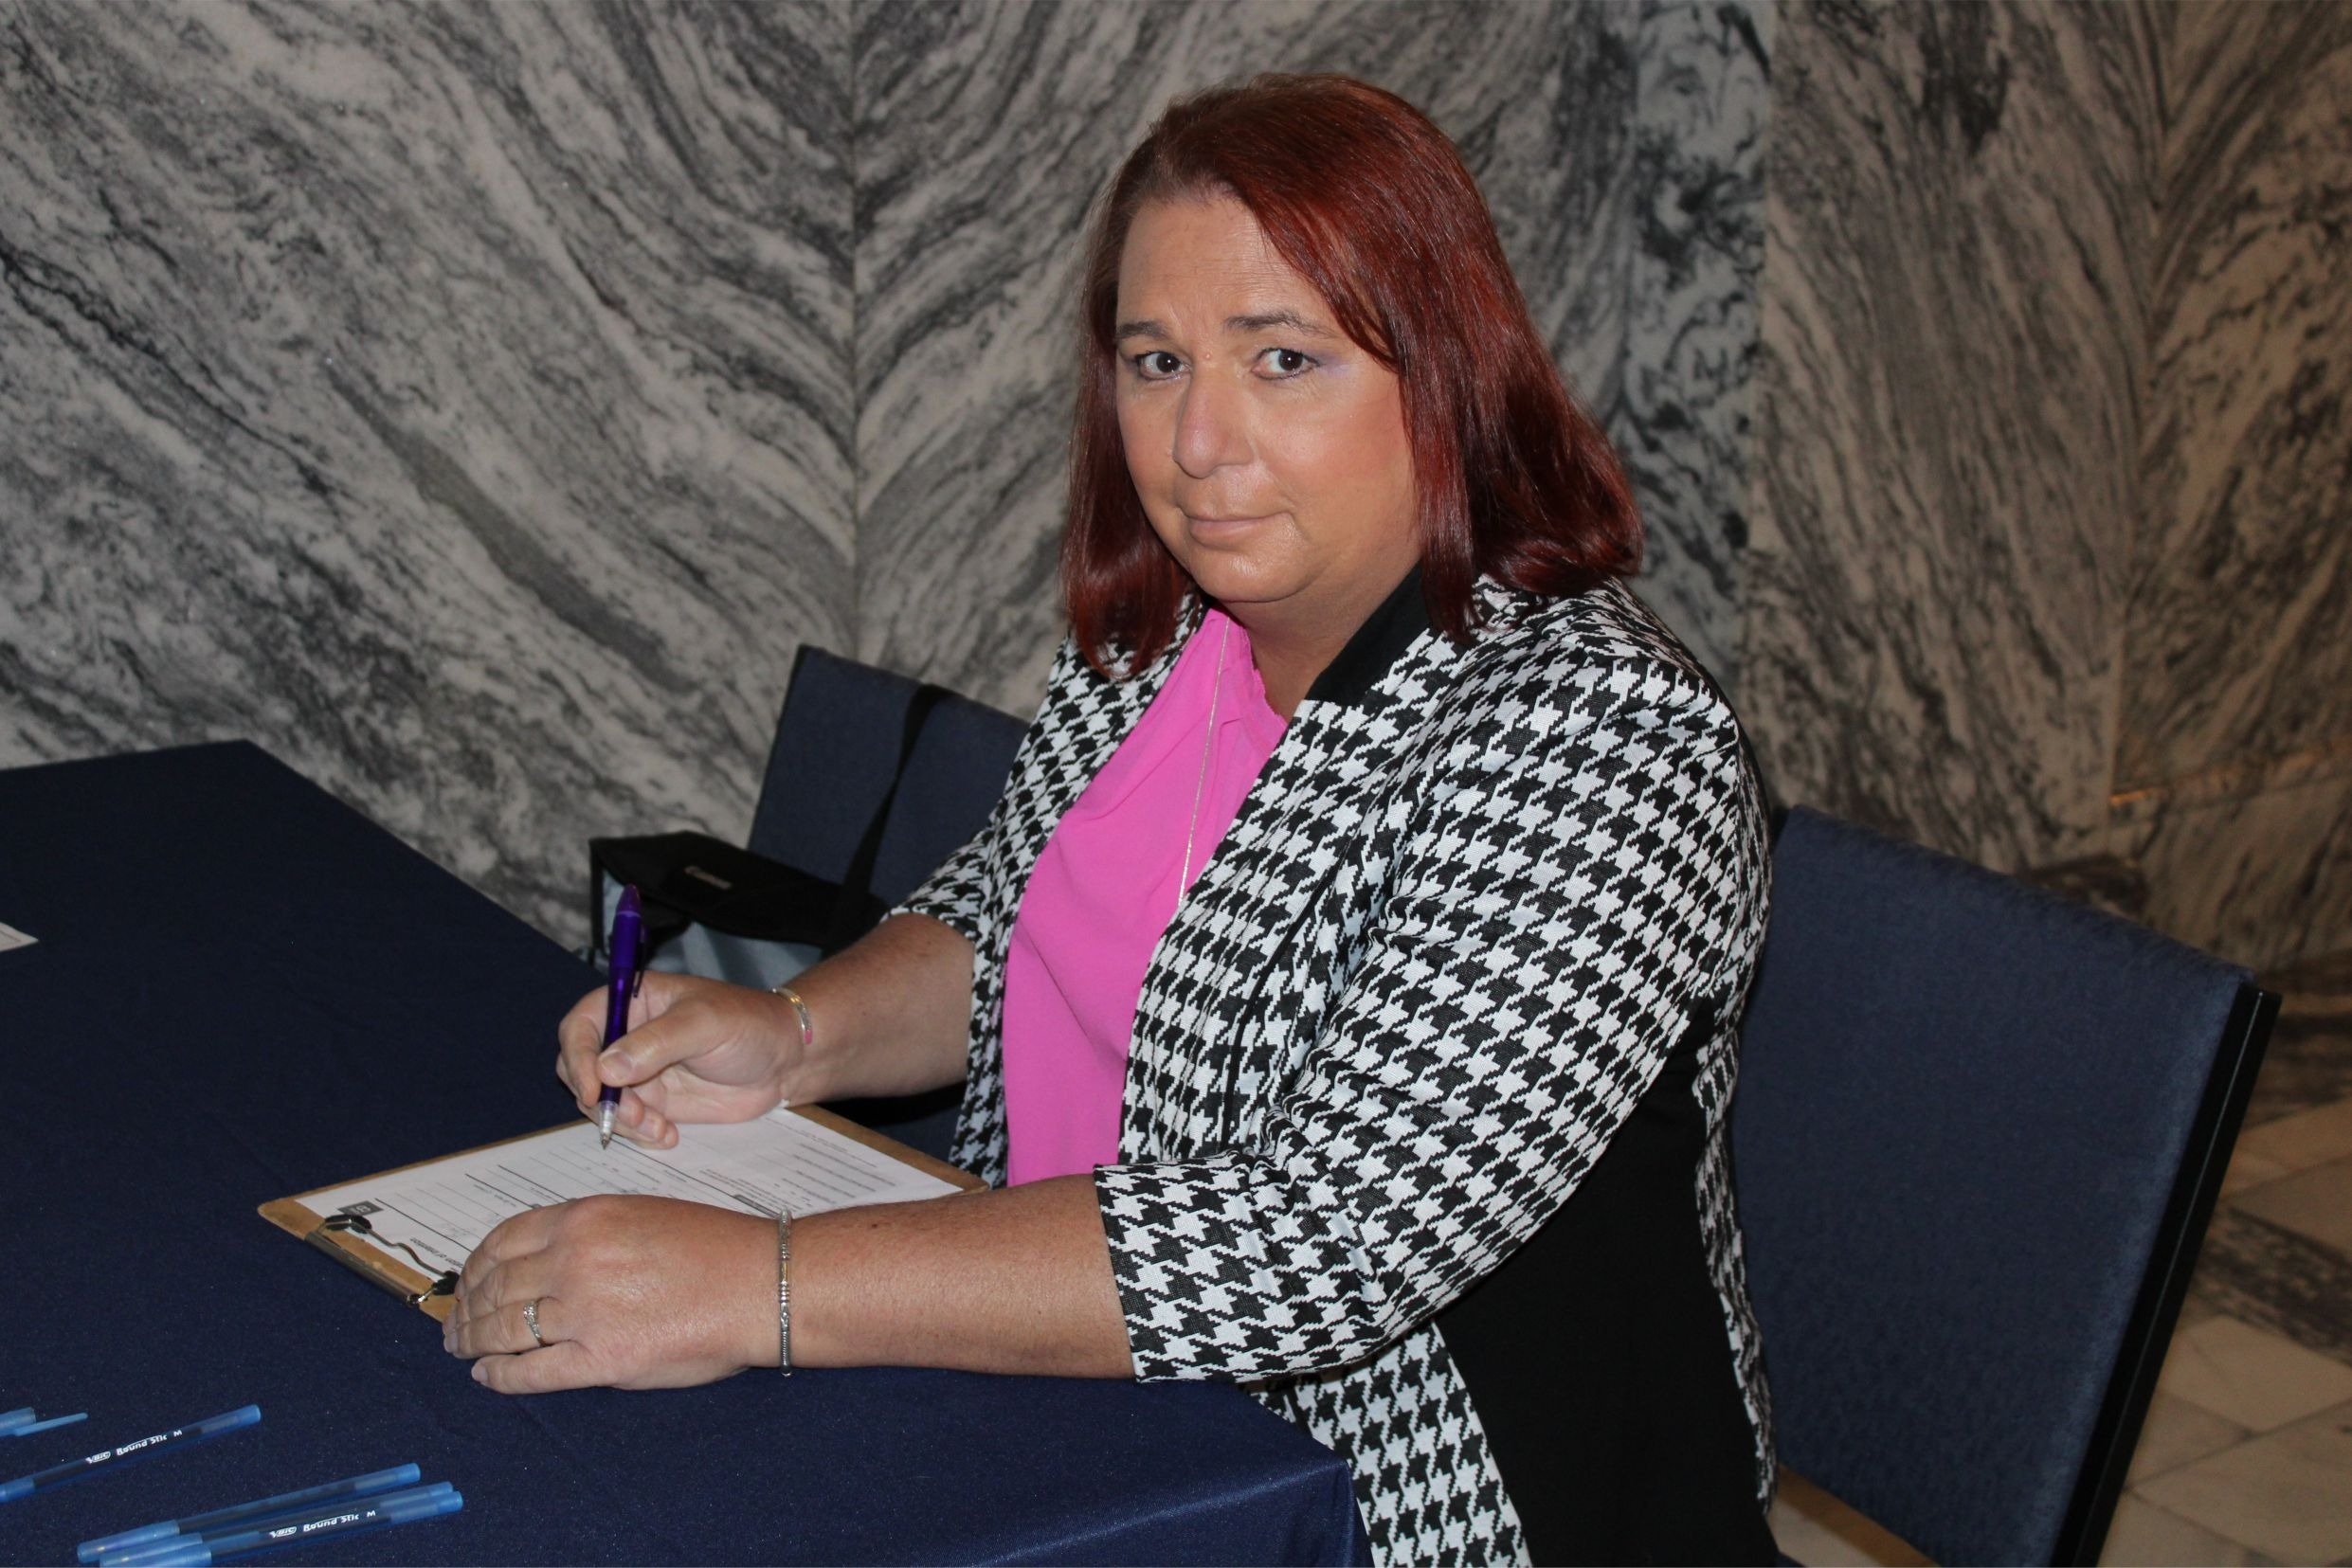 Stephanie Byers files her candidacy declaration for Kansas House of Representatives